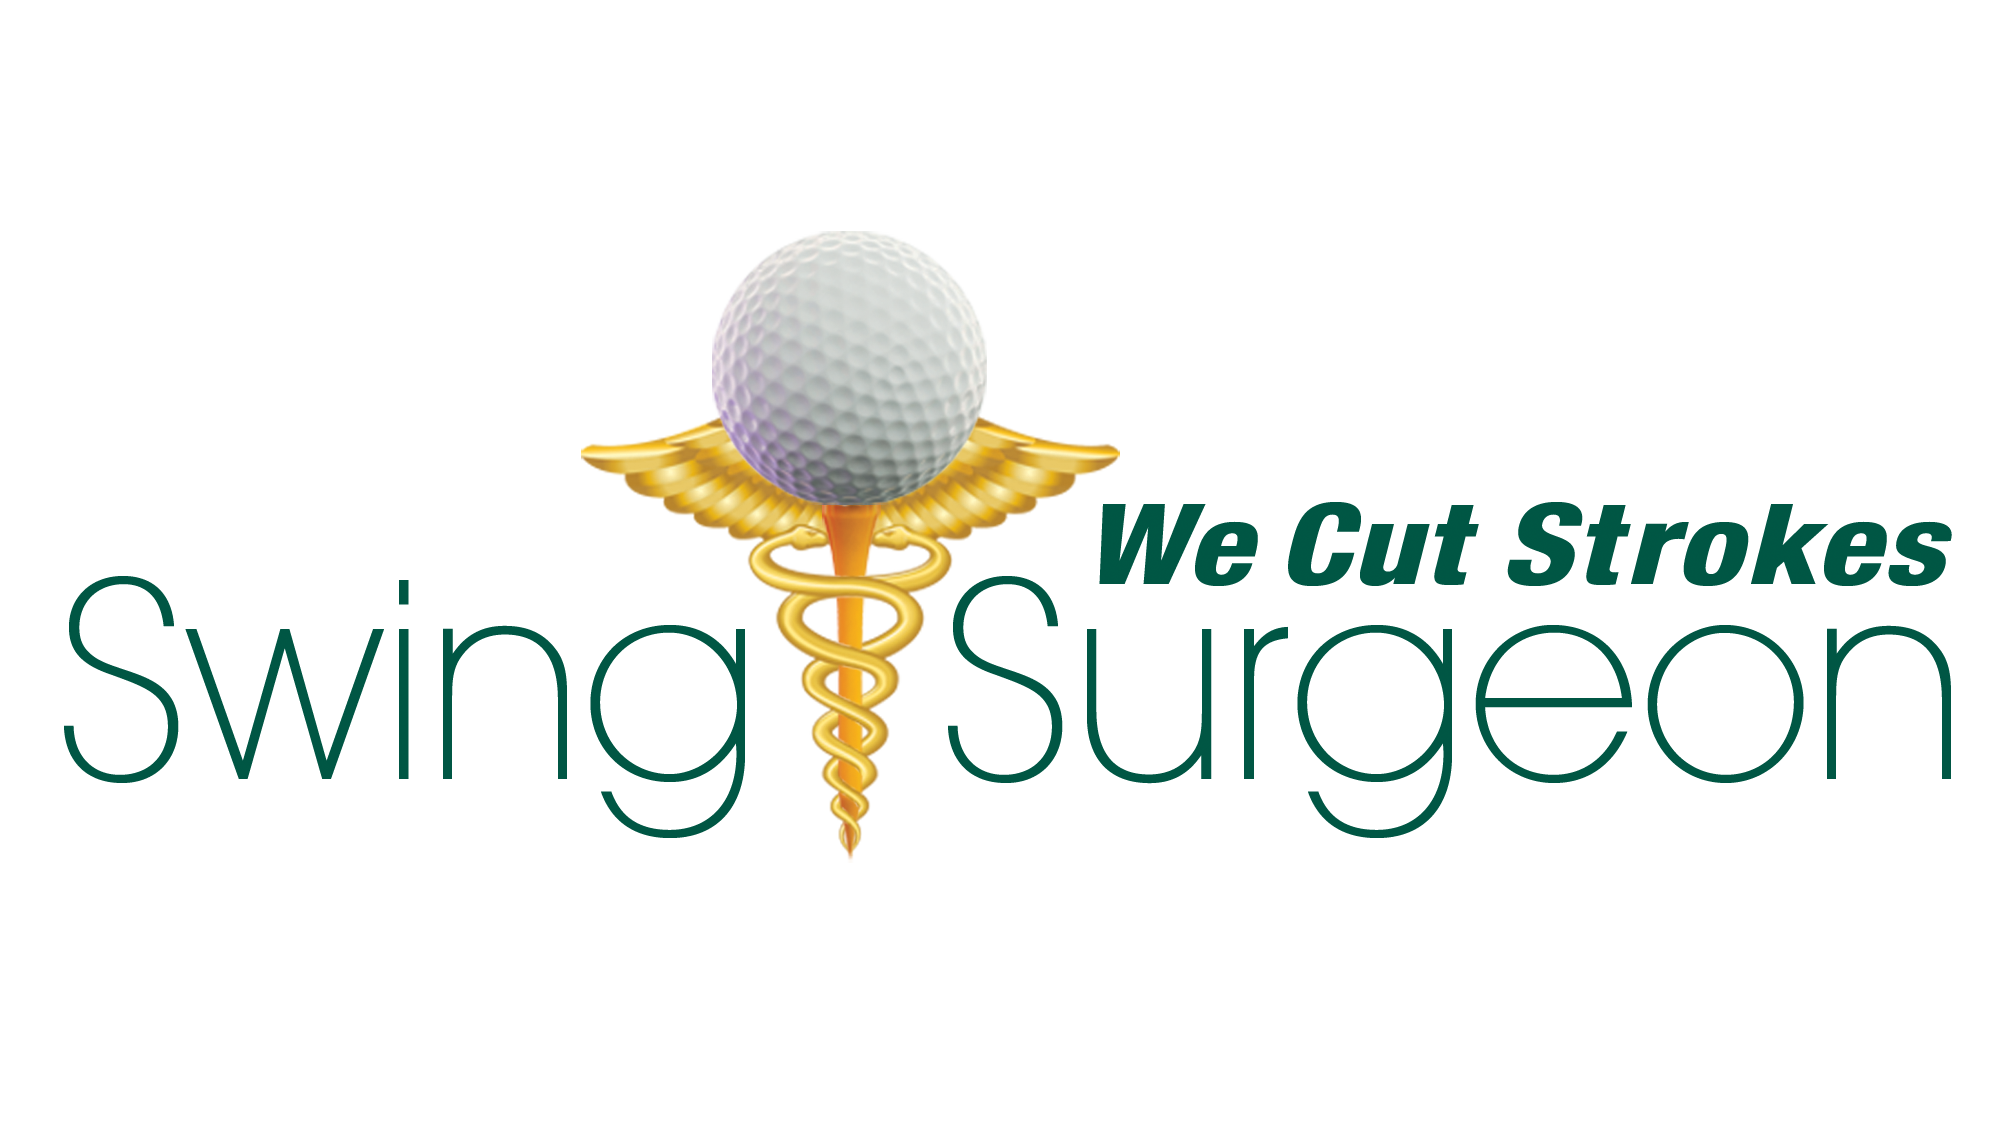 SwingSurgeon_LOGO_green